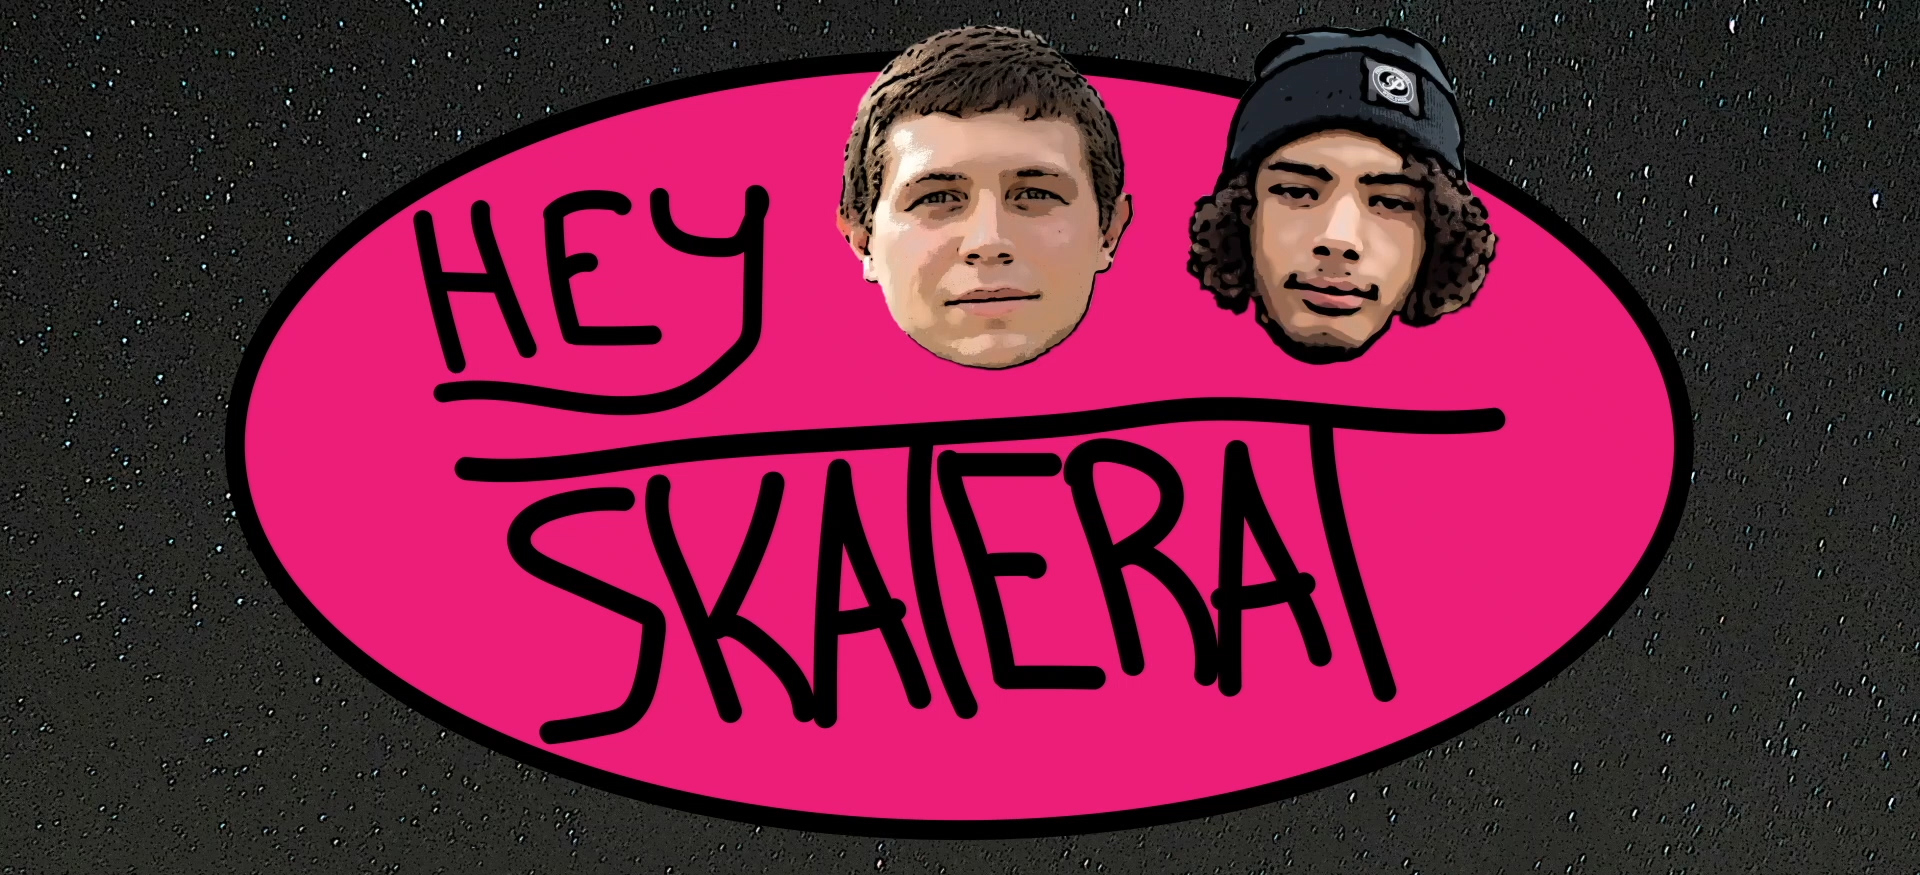 Hey Skate Rat Ep. 2 | Glass Half Full